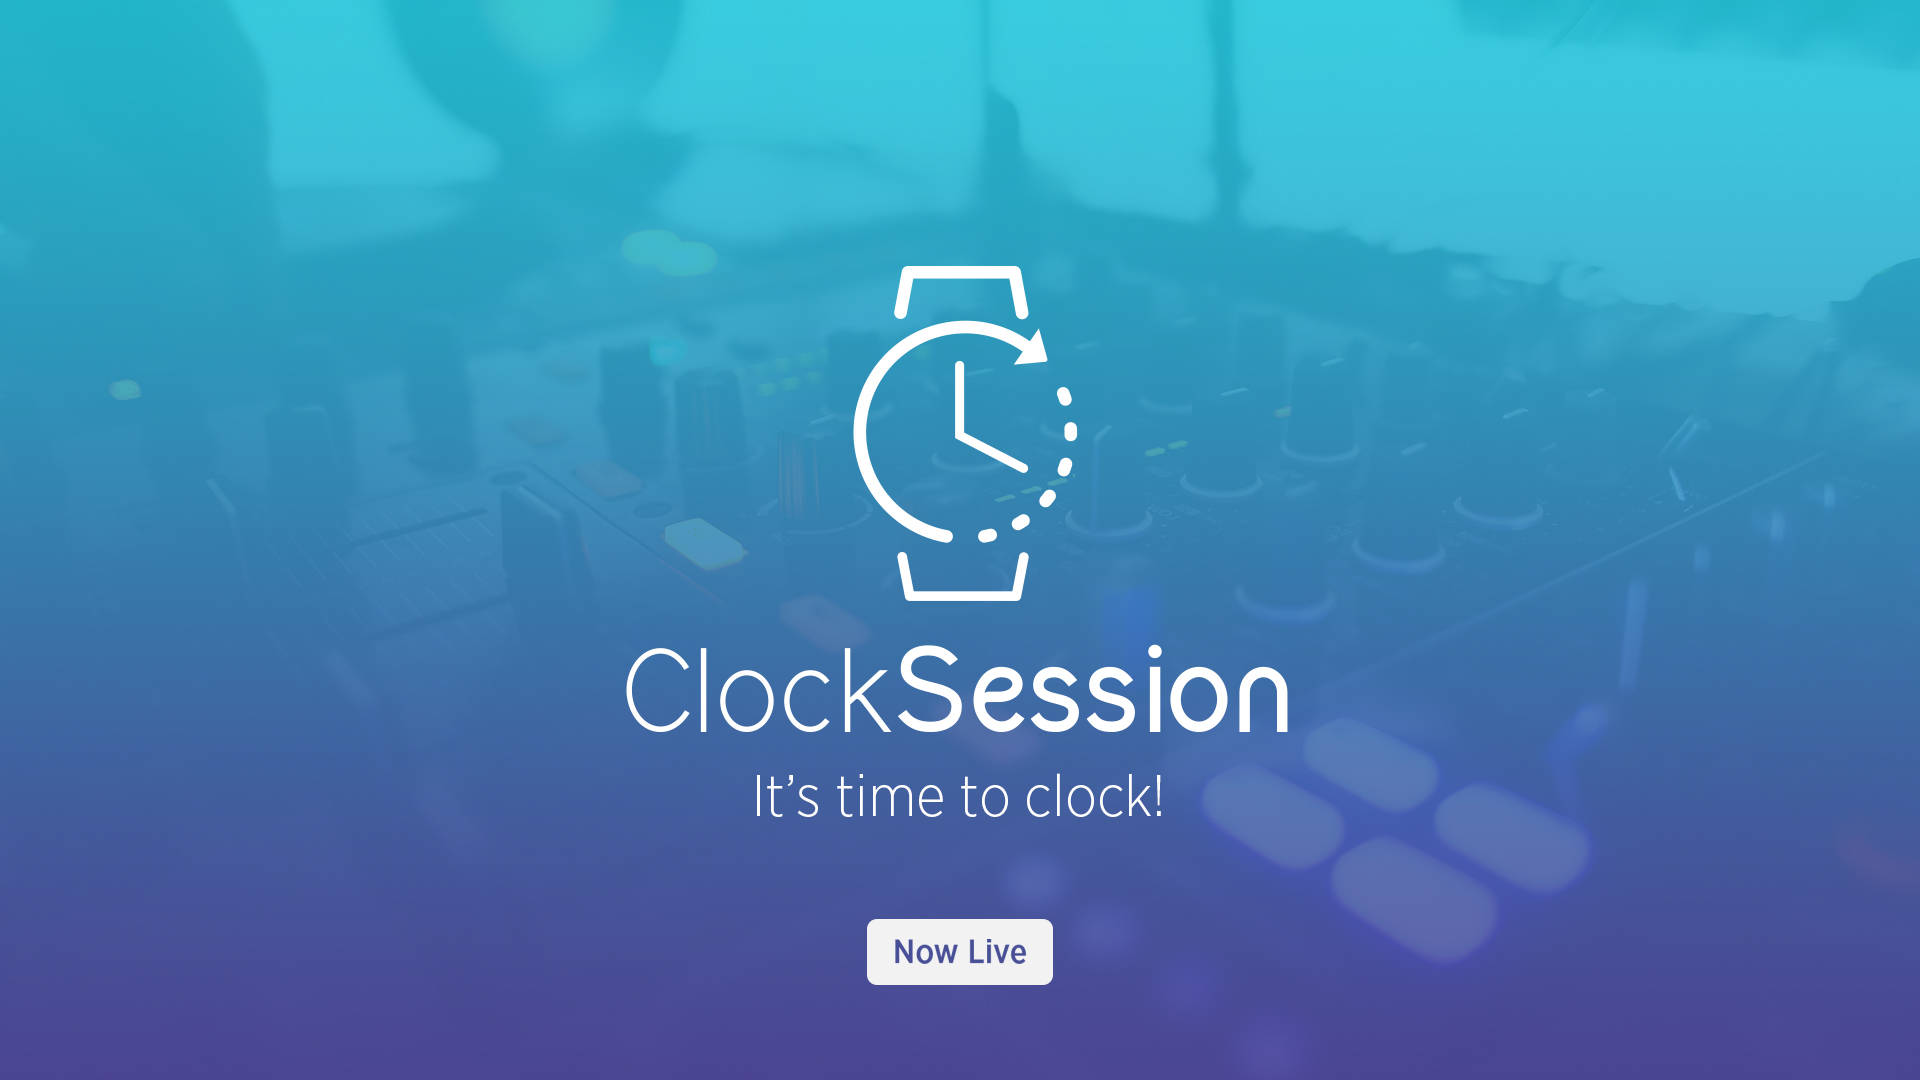 CLOCKBEATS - THE MAGIC OF THE CLOCK SESSION BECOMES A PARTY